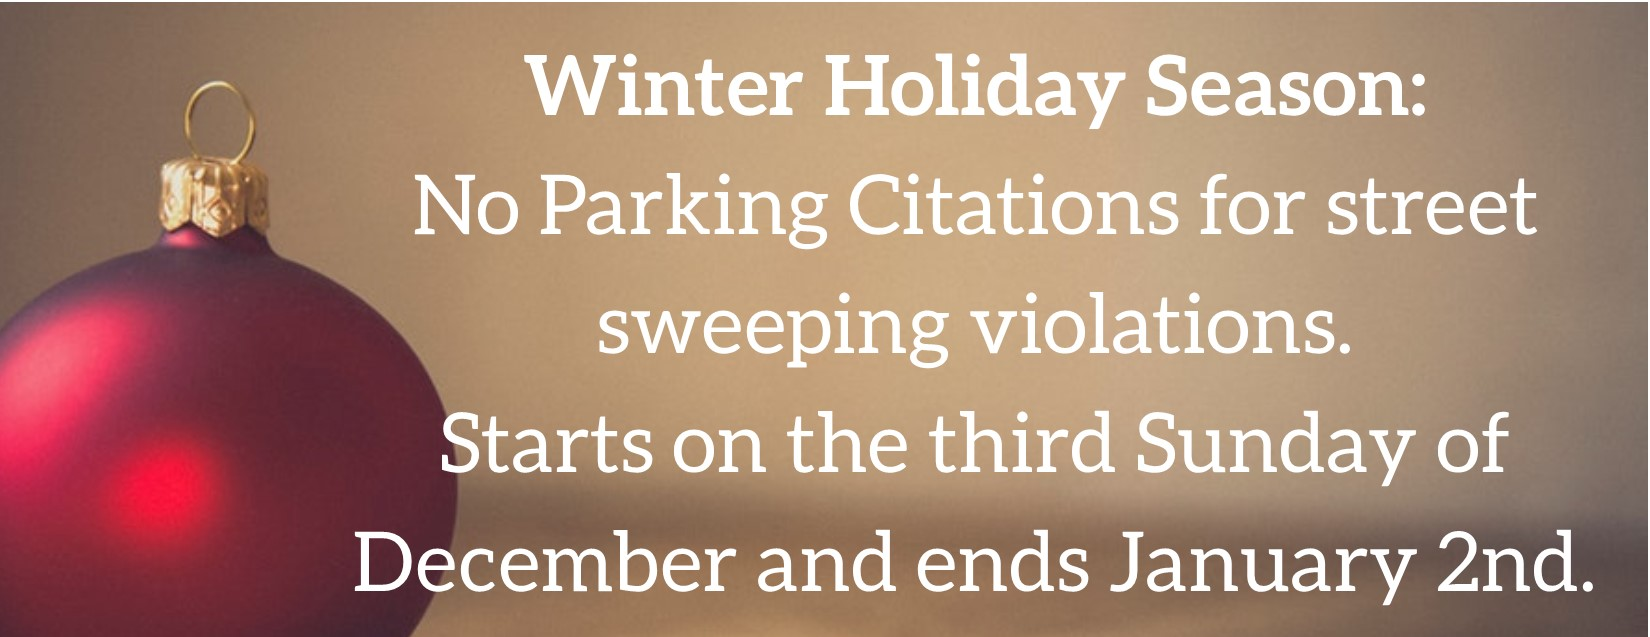 No Parking Enforcement for Street Sweeping during Holiday Season